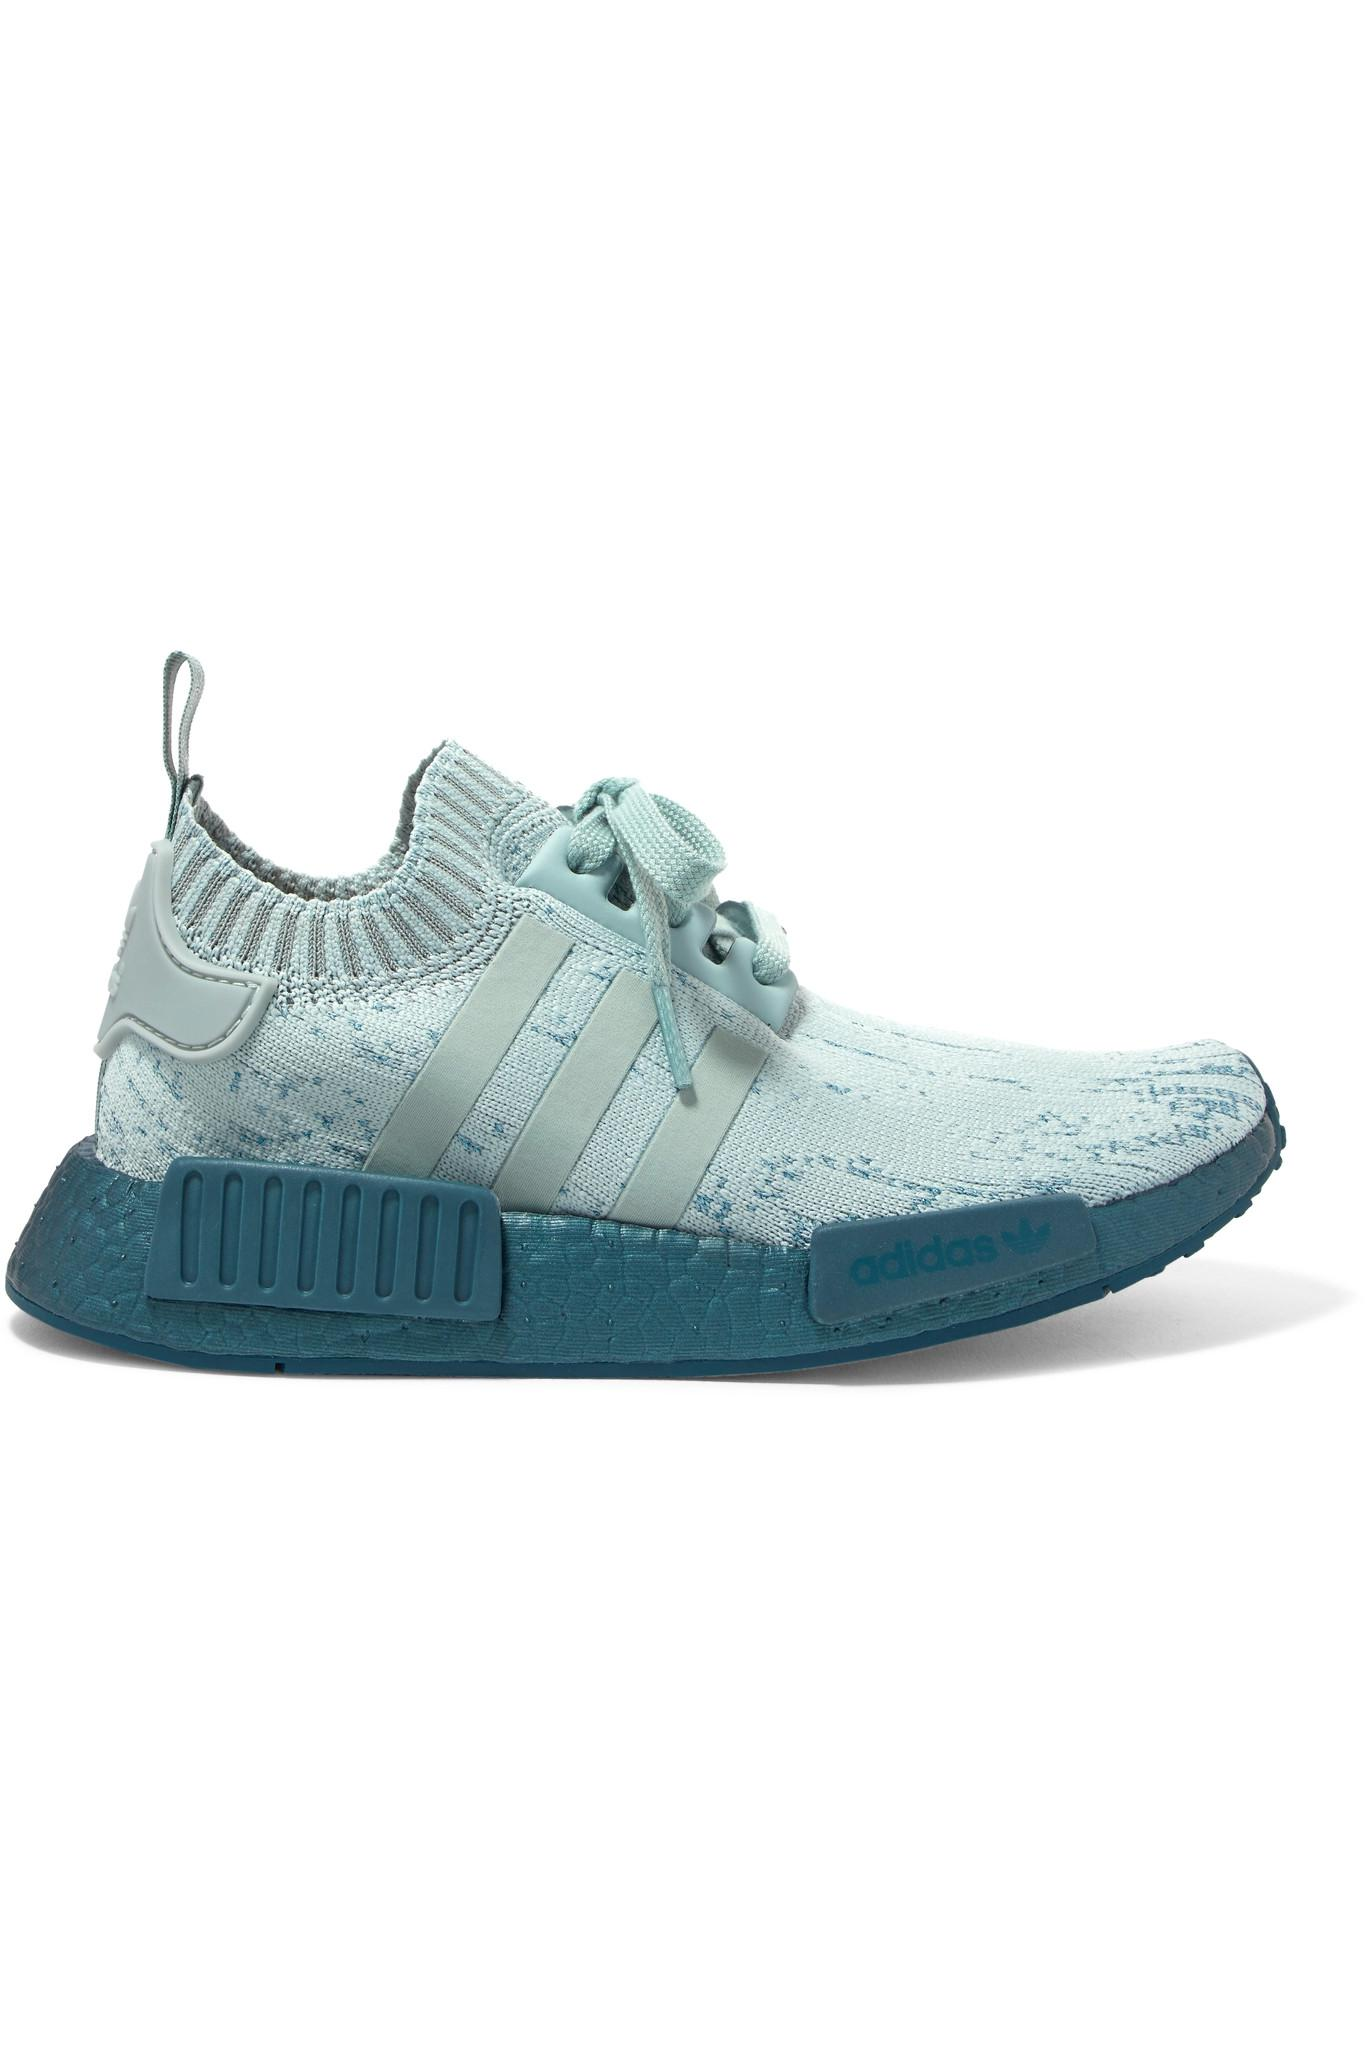 b56005d2c Adidas Originals Nmd R1 Rubber-trimmed Primeknit Sneakers - Lyst